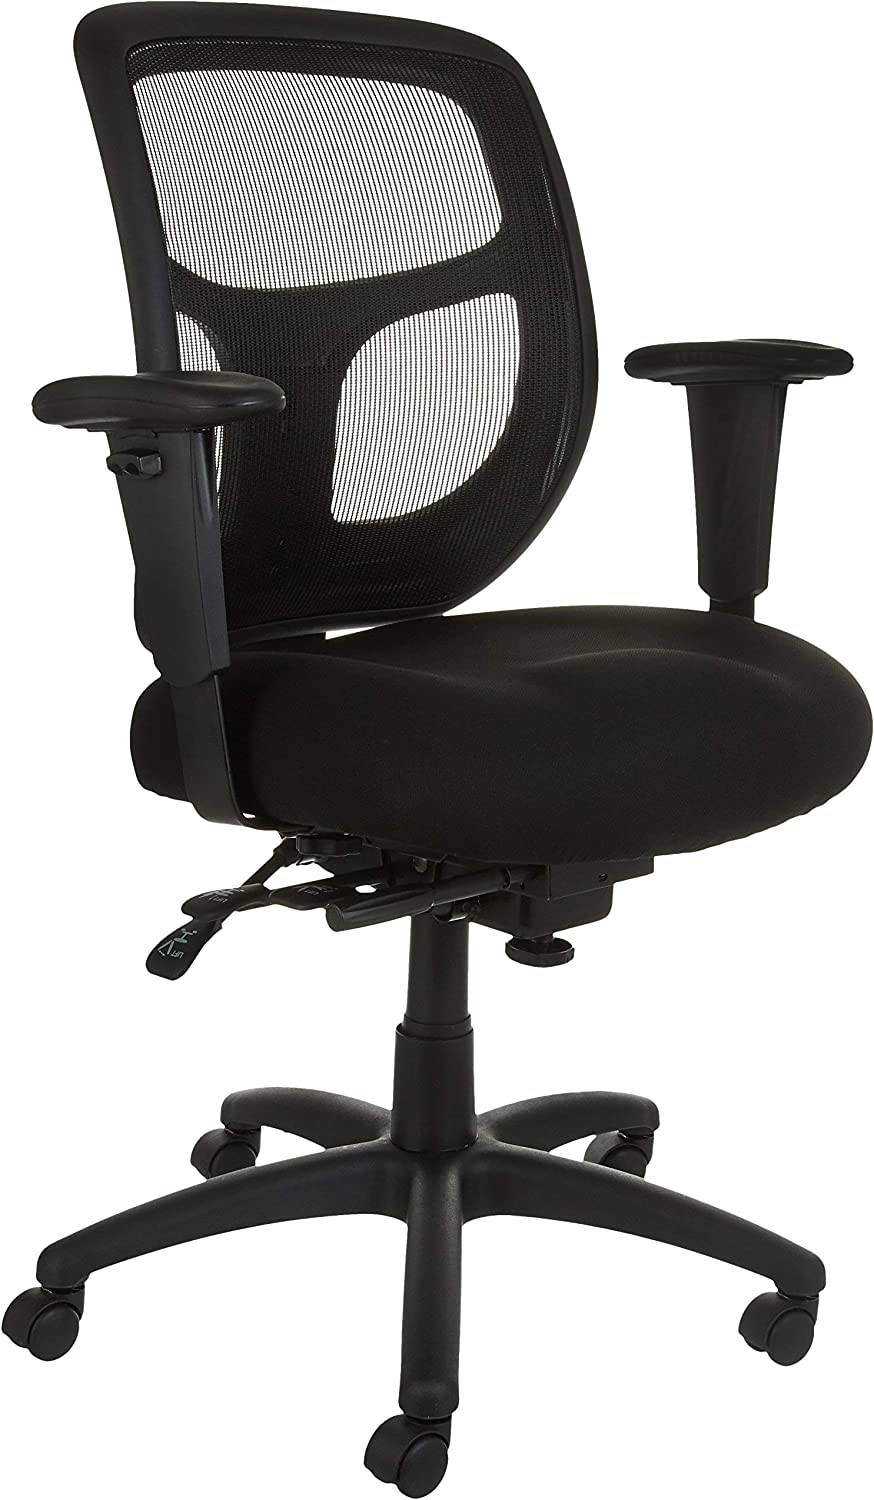 AmazonBasics Mesh Fabric Executive Mid-Back Office Desk Chair, Black